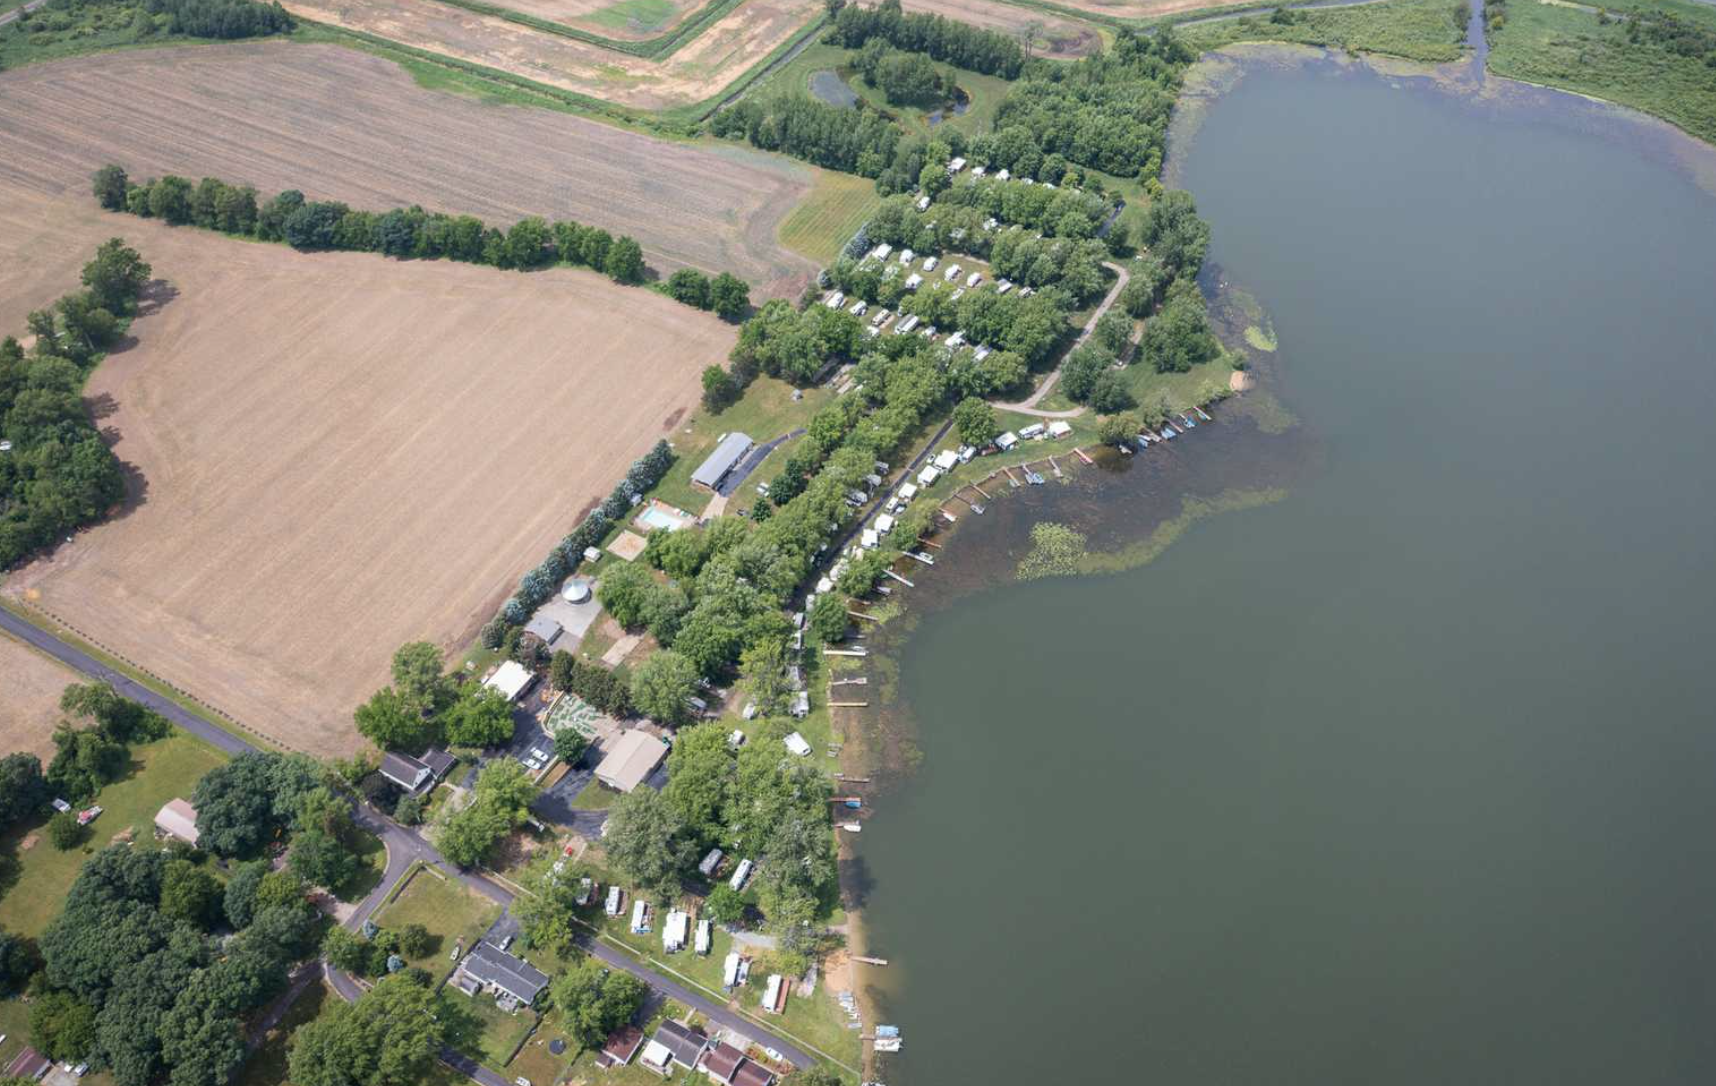 aerial view of campground next to large body of water